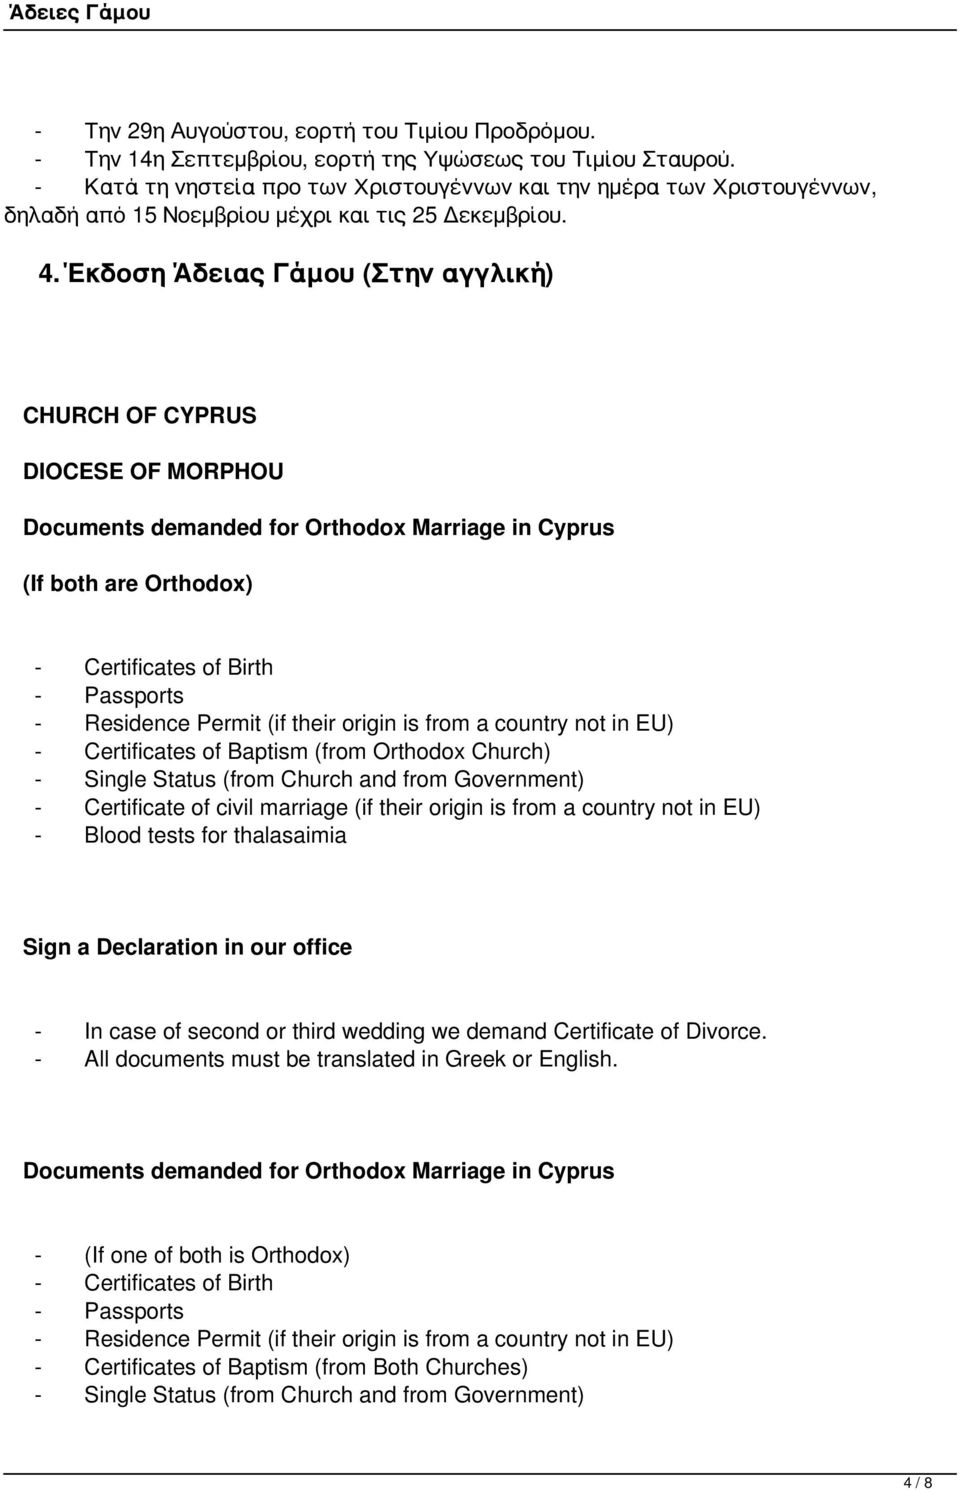 Έκδοση Άδειας Γάμου (Στην αγγλική) CHURCH OF CYPRUS DIOCESE OF MORPHOU Documents demanded for Orthodox Marriage in Cyprus (If both are Orthodox) - Certificates of Birth - Passports - Residence Permit